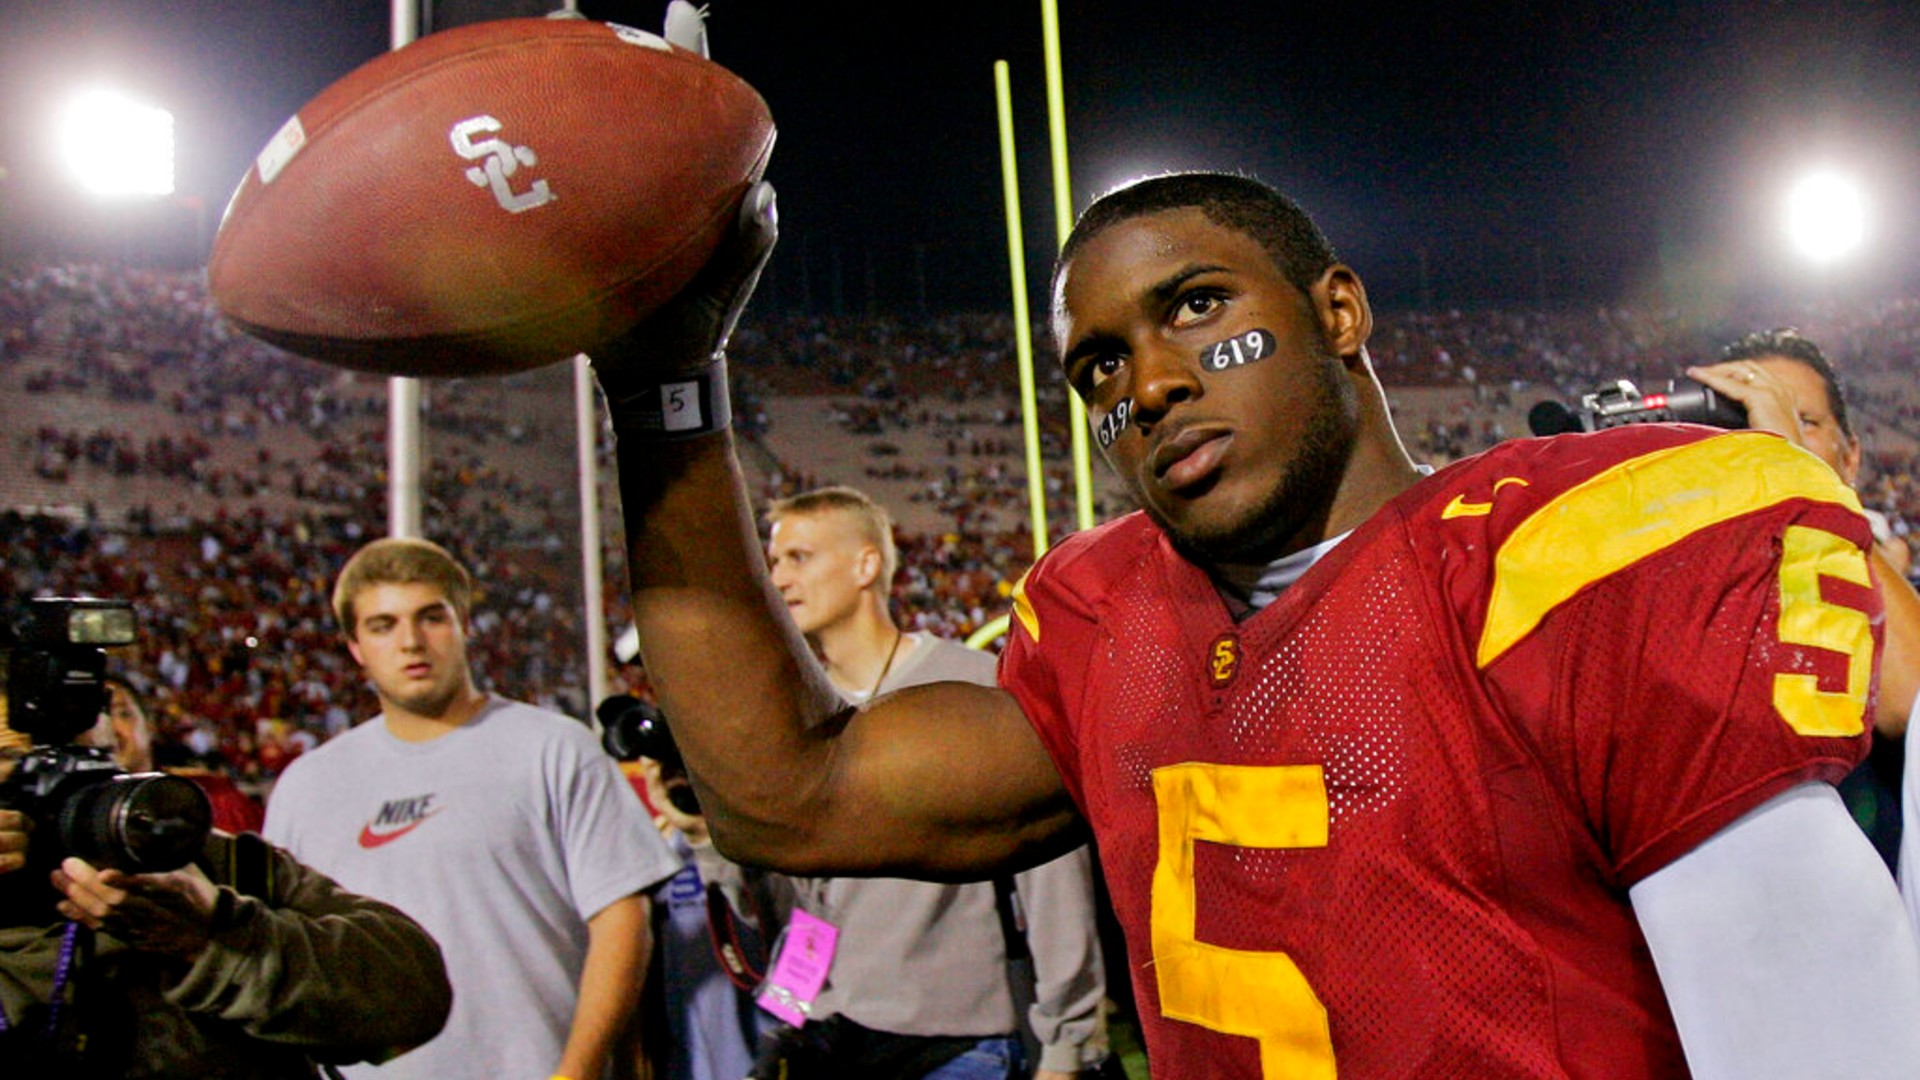 In this Nov. 19, 2005, file photo, Southern California tail back Reggie Bush walks off the field holding the game ball after the Trojans defeated Fresno State at the Los Angeles Coliseum. (AP Photo/Kevork Djansezian, File)